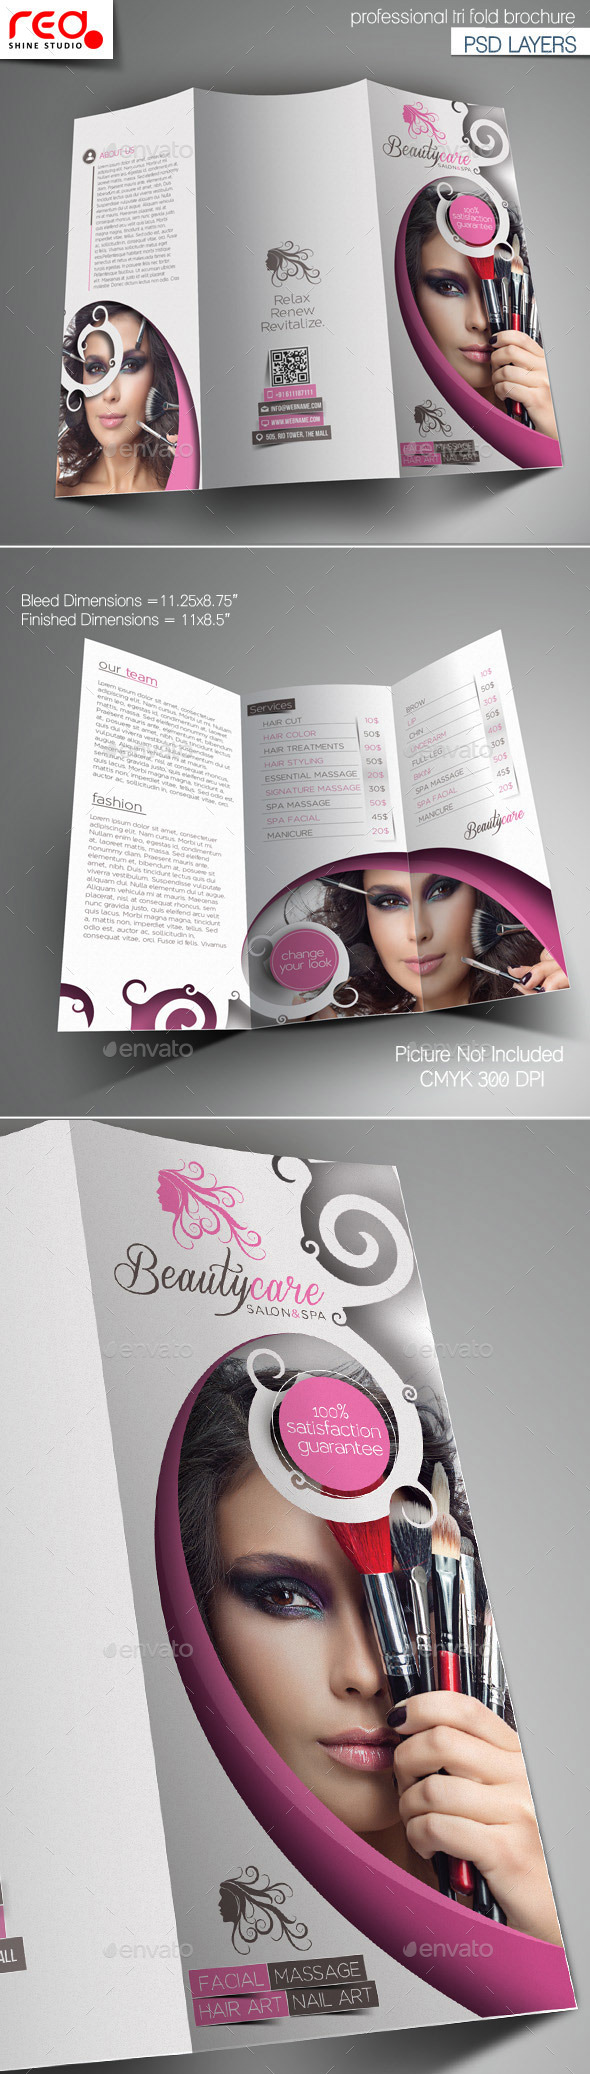 GraphicRiver Beauty Care Trifold Brochure Template 10765856